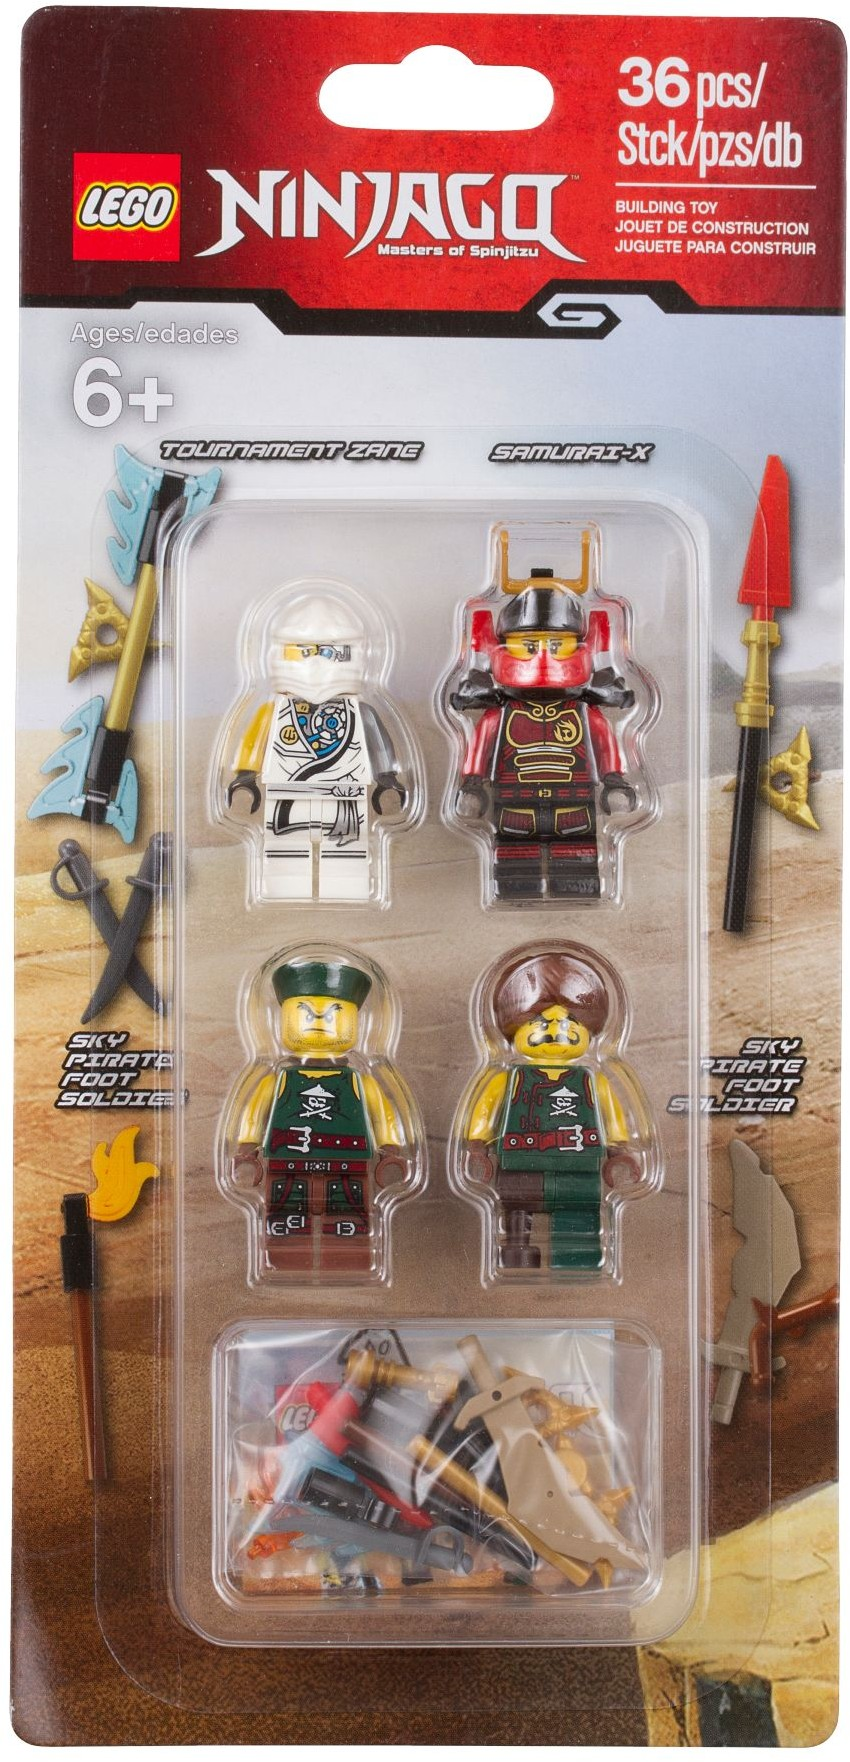 Guide Set And Ninjago2016 BricksetLego Database R534AjL